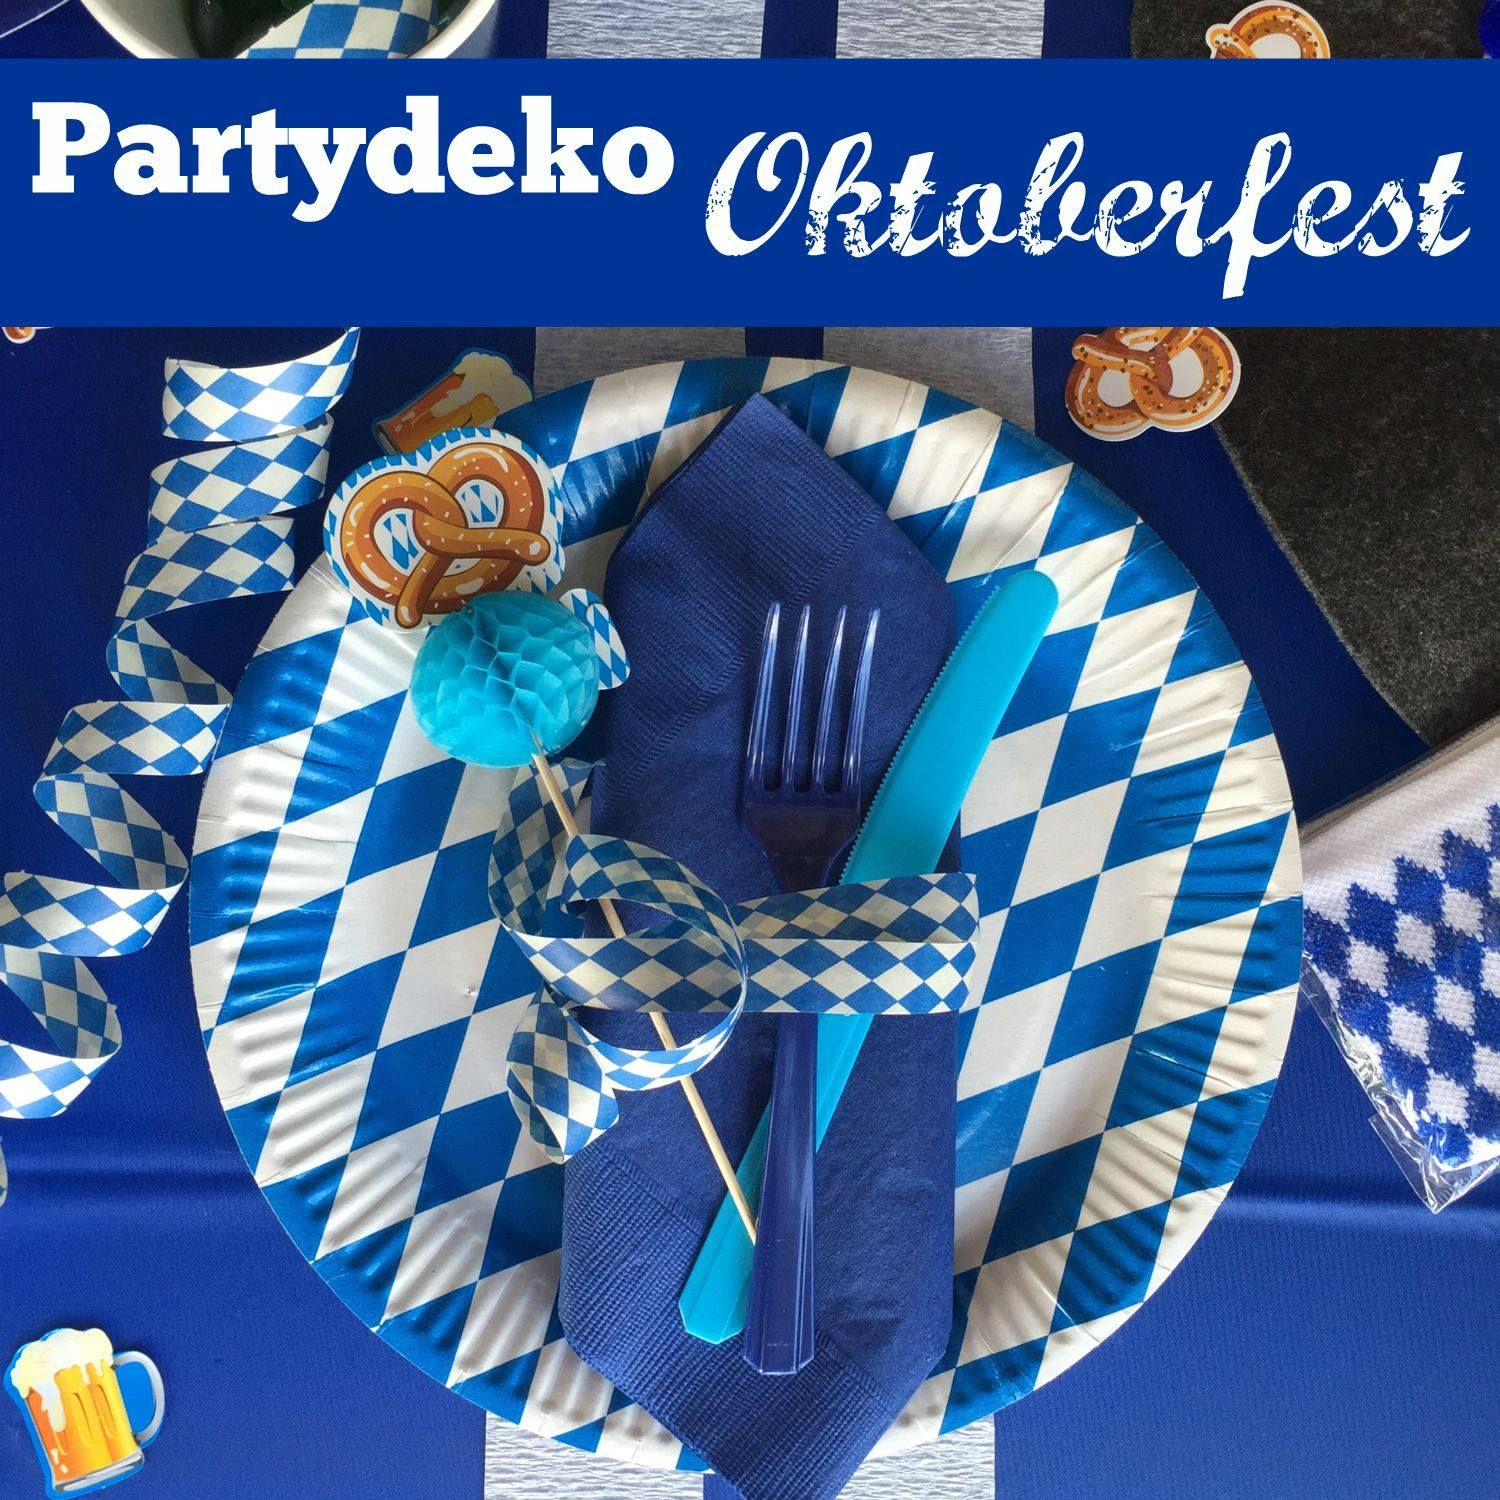 oktoberfest deko in weiss blau oktoberfest party. Black Bedroom Furniture Sets. Home Design Ideas